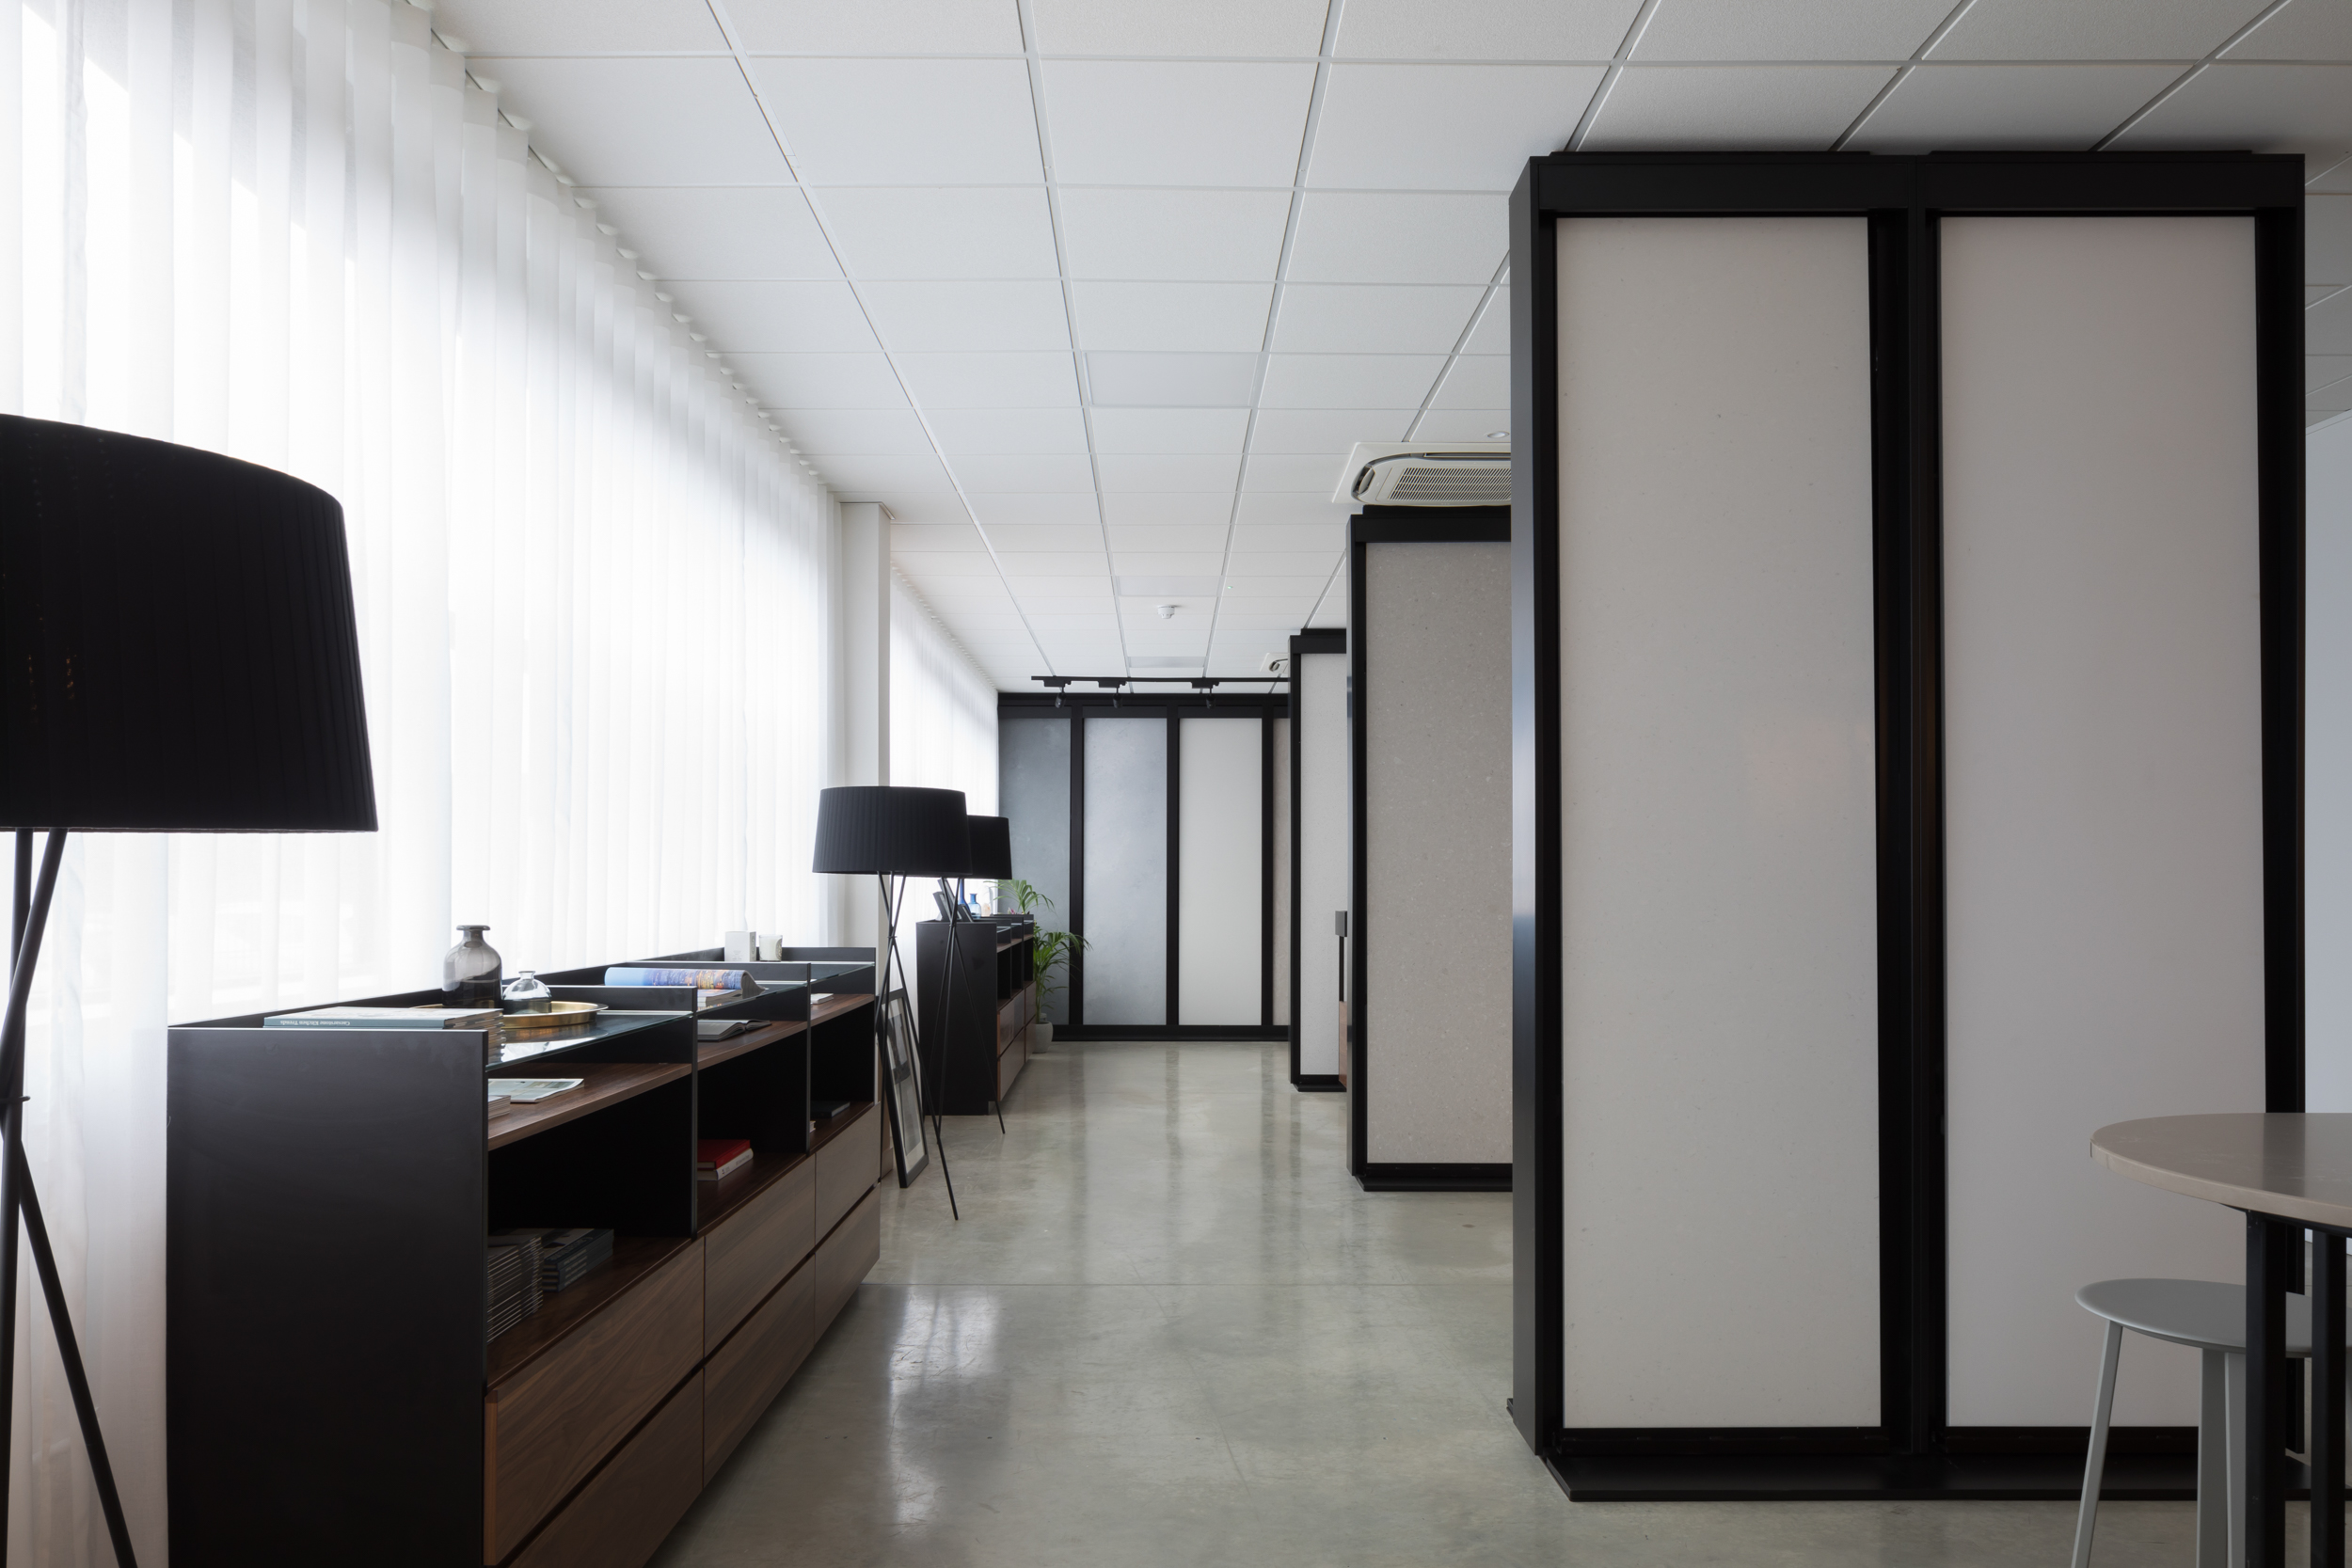 paul craig photographer interior photography showroom commercial